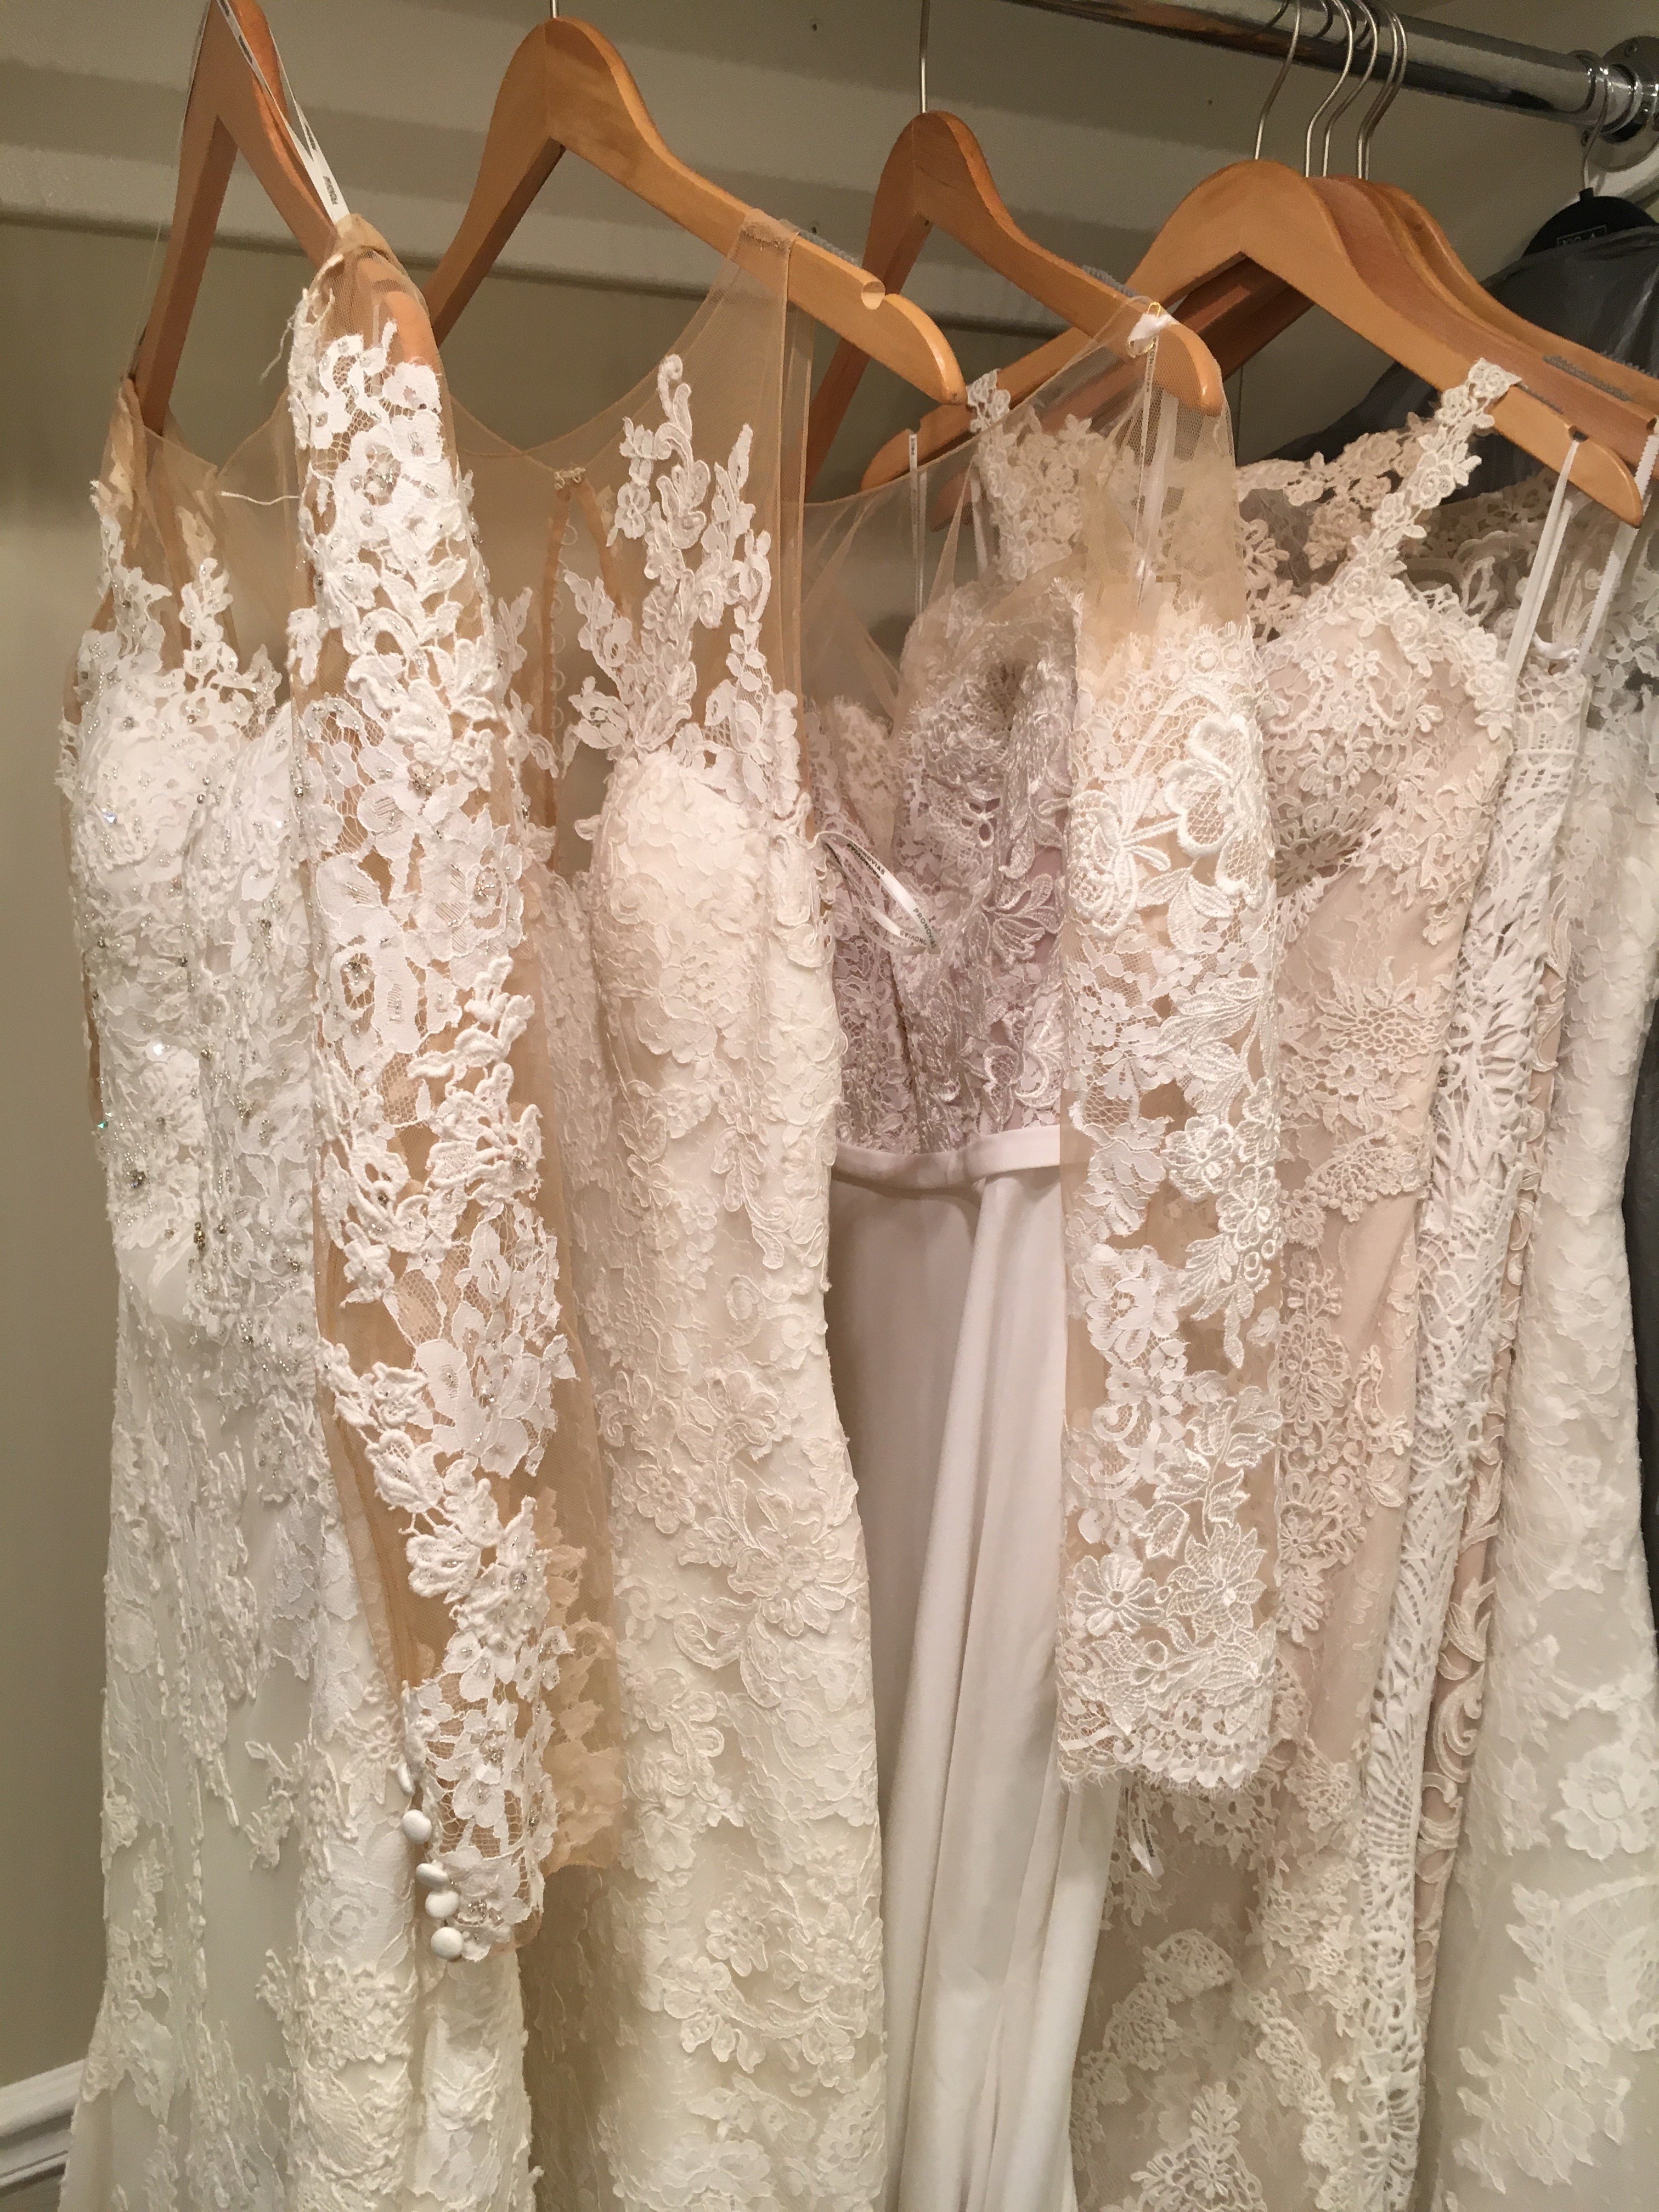 These are a few of the dresses I tried on last weekend.